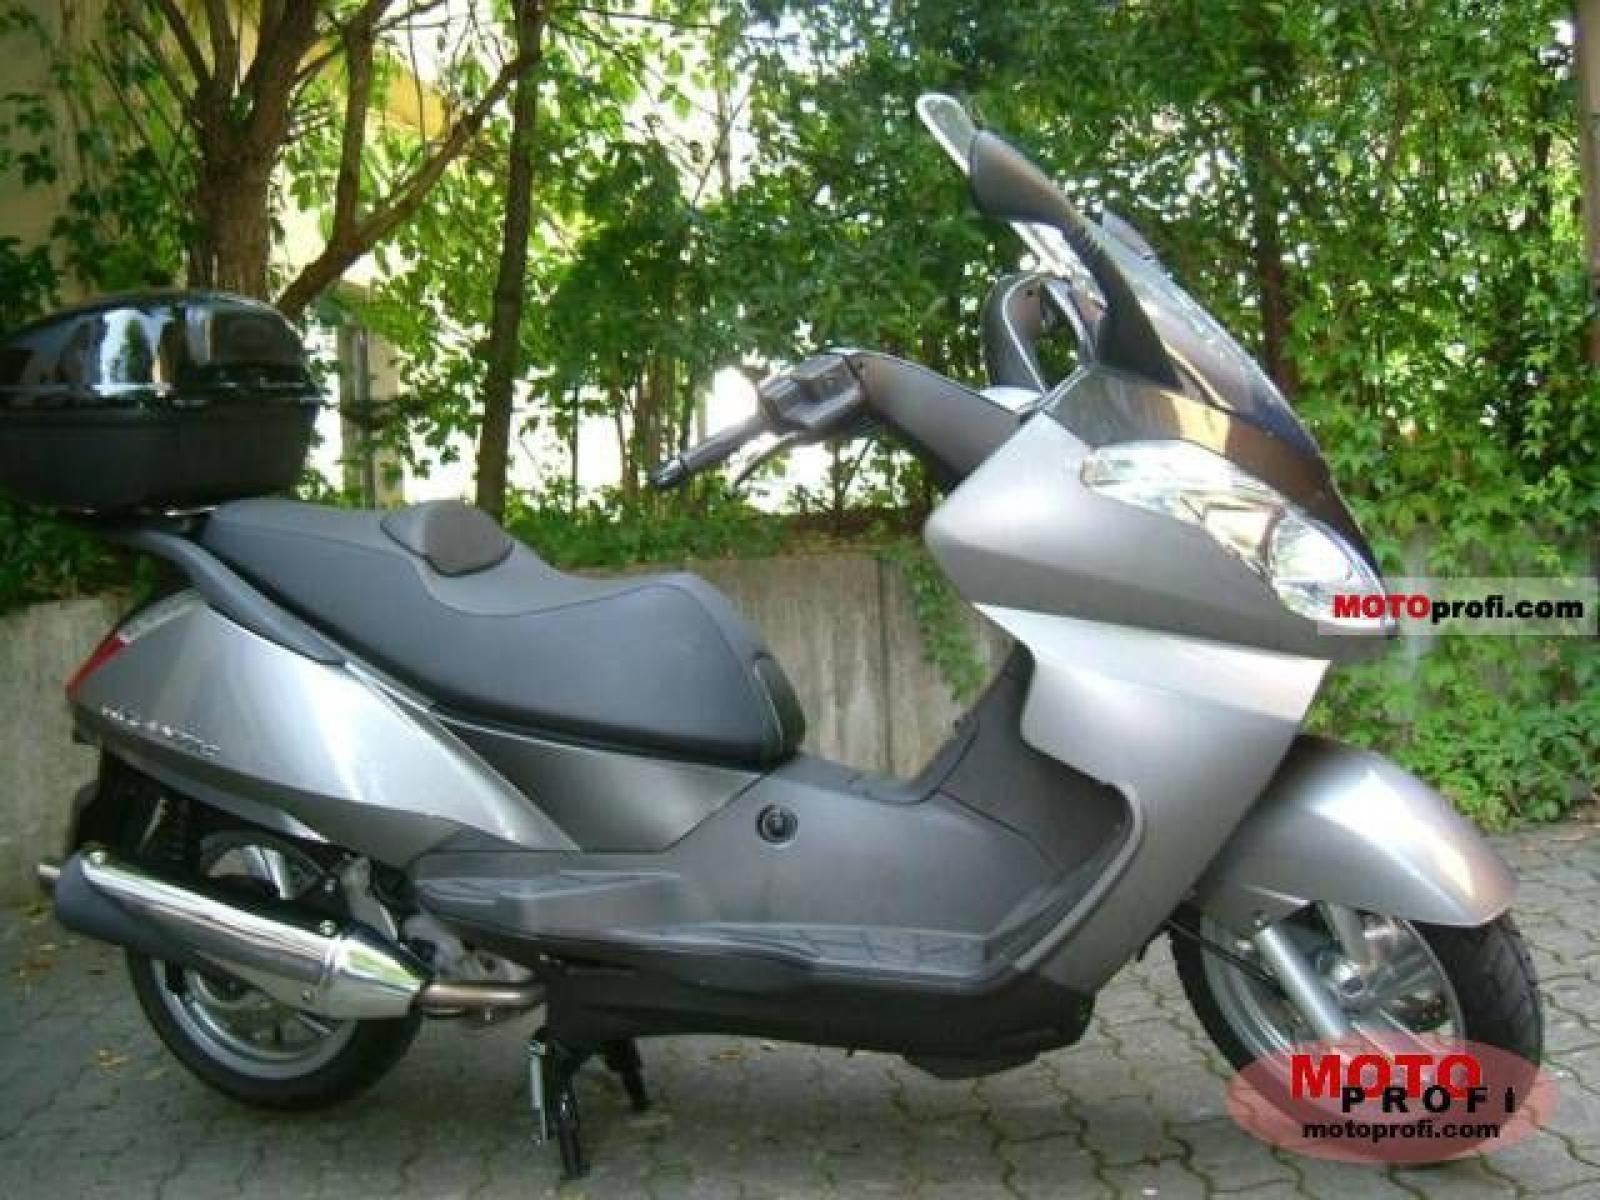 aprilia atlantic 125 pics specs and list of seriess by year. Black Bedroom Furniture Sets. Home Design Ideas